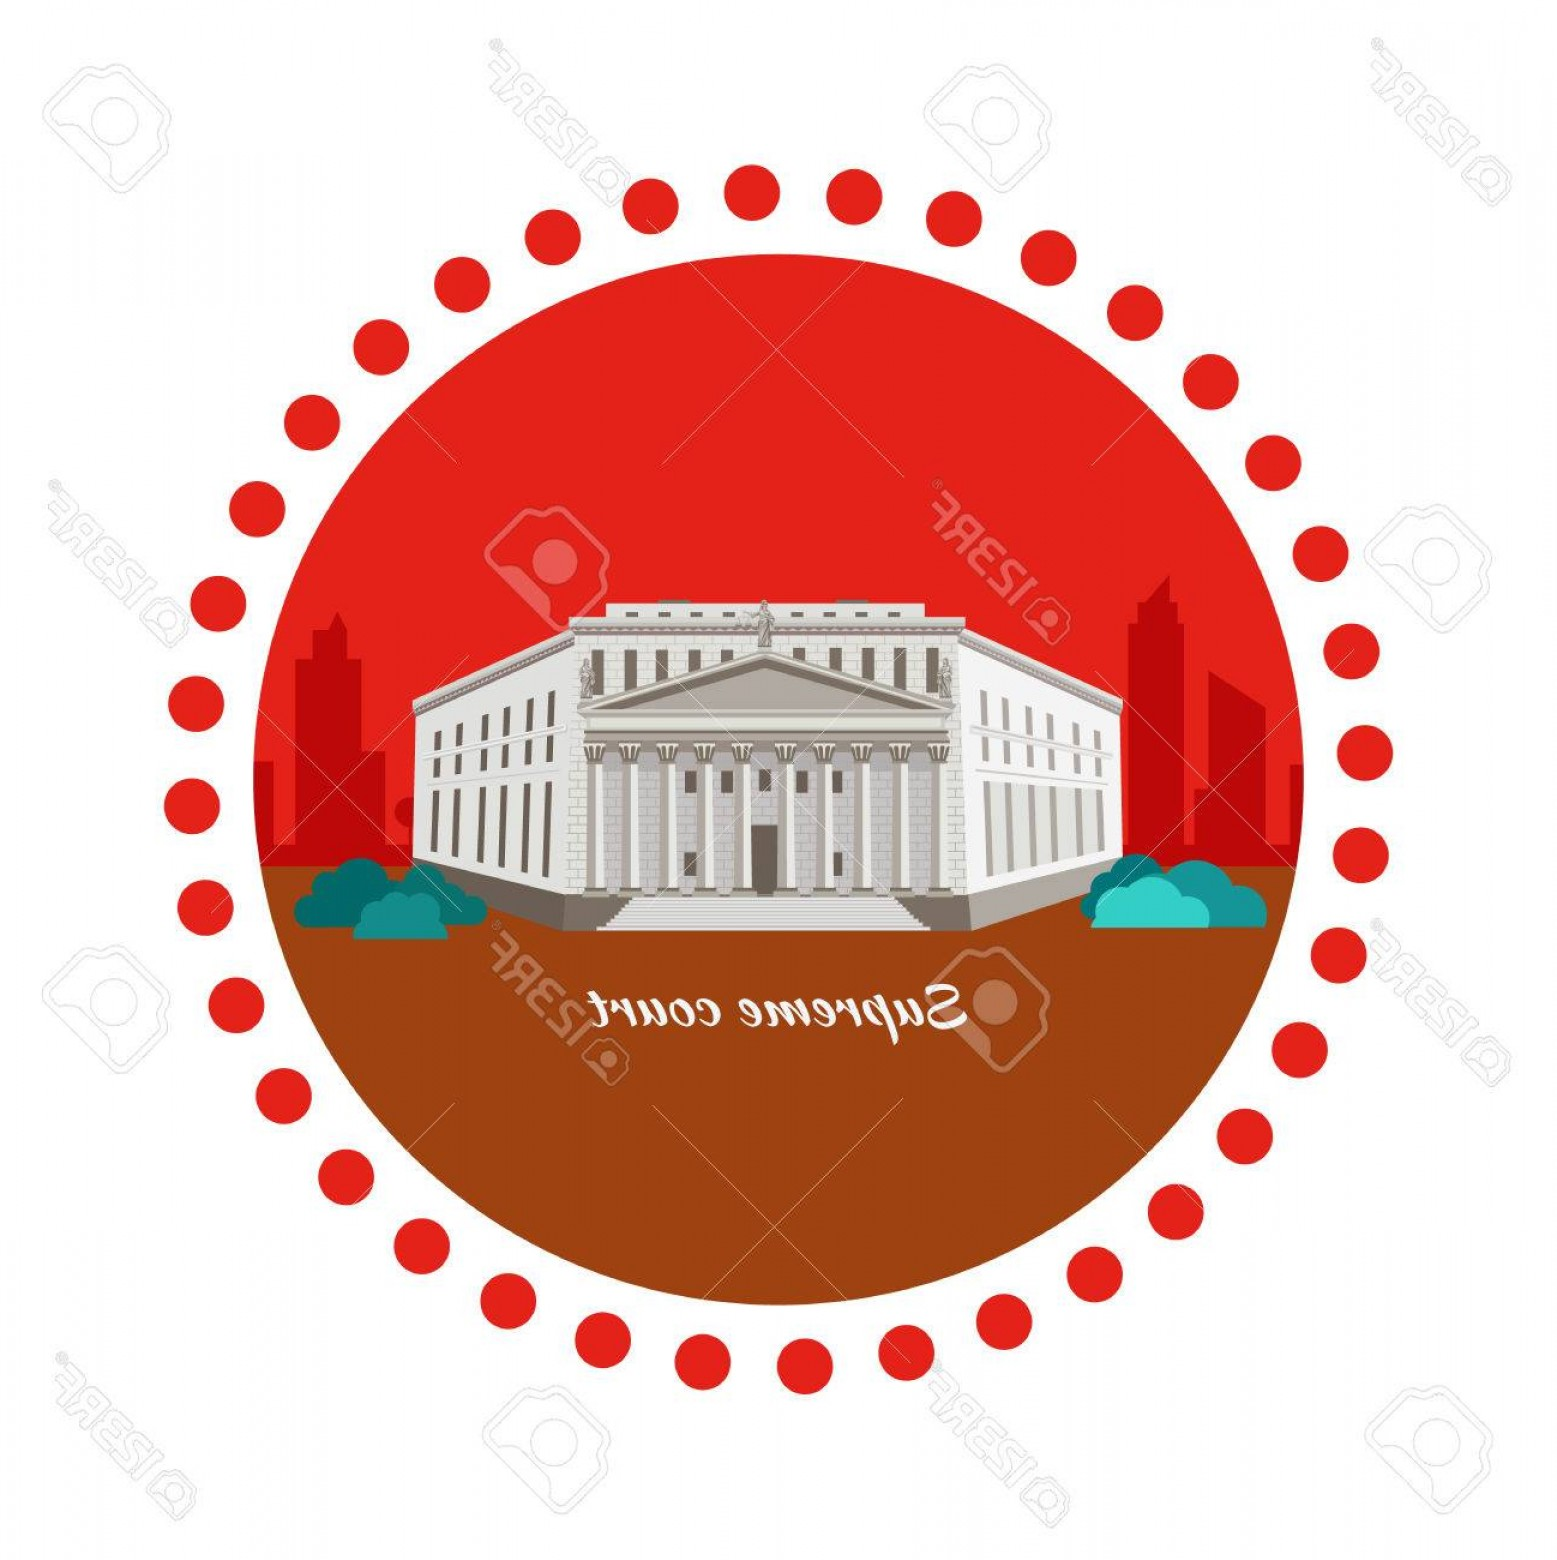 Supreme Logo Vector: Photostock Vector Supreme Court Concept Icon Flat Design Justice And Law Legal Decision Legislation Equality Building